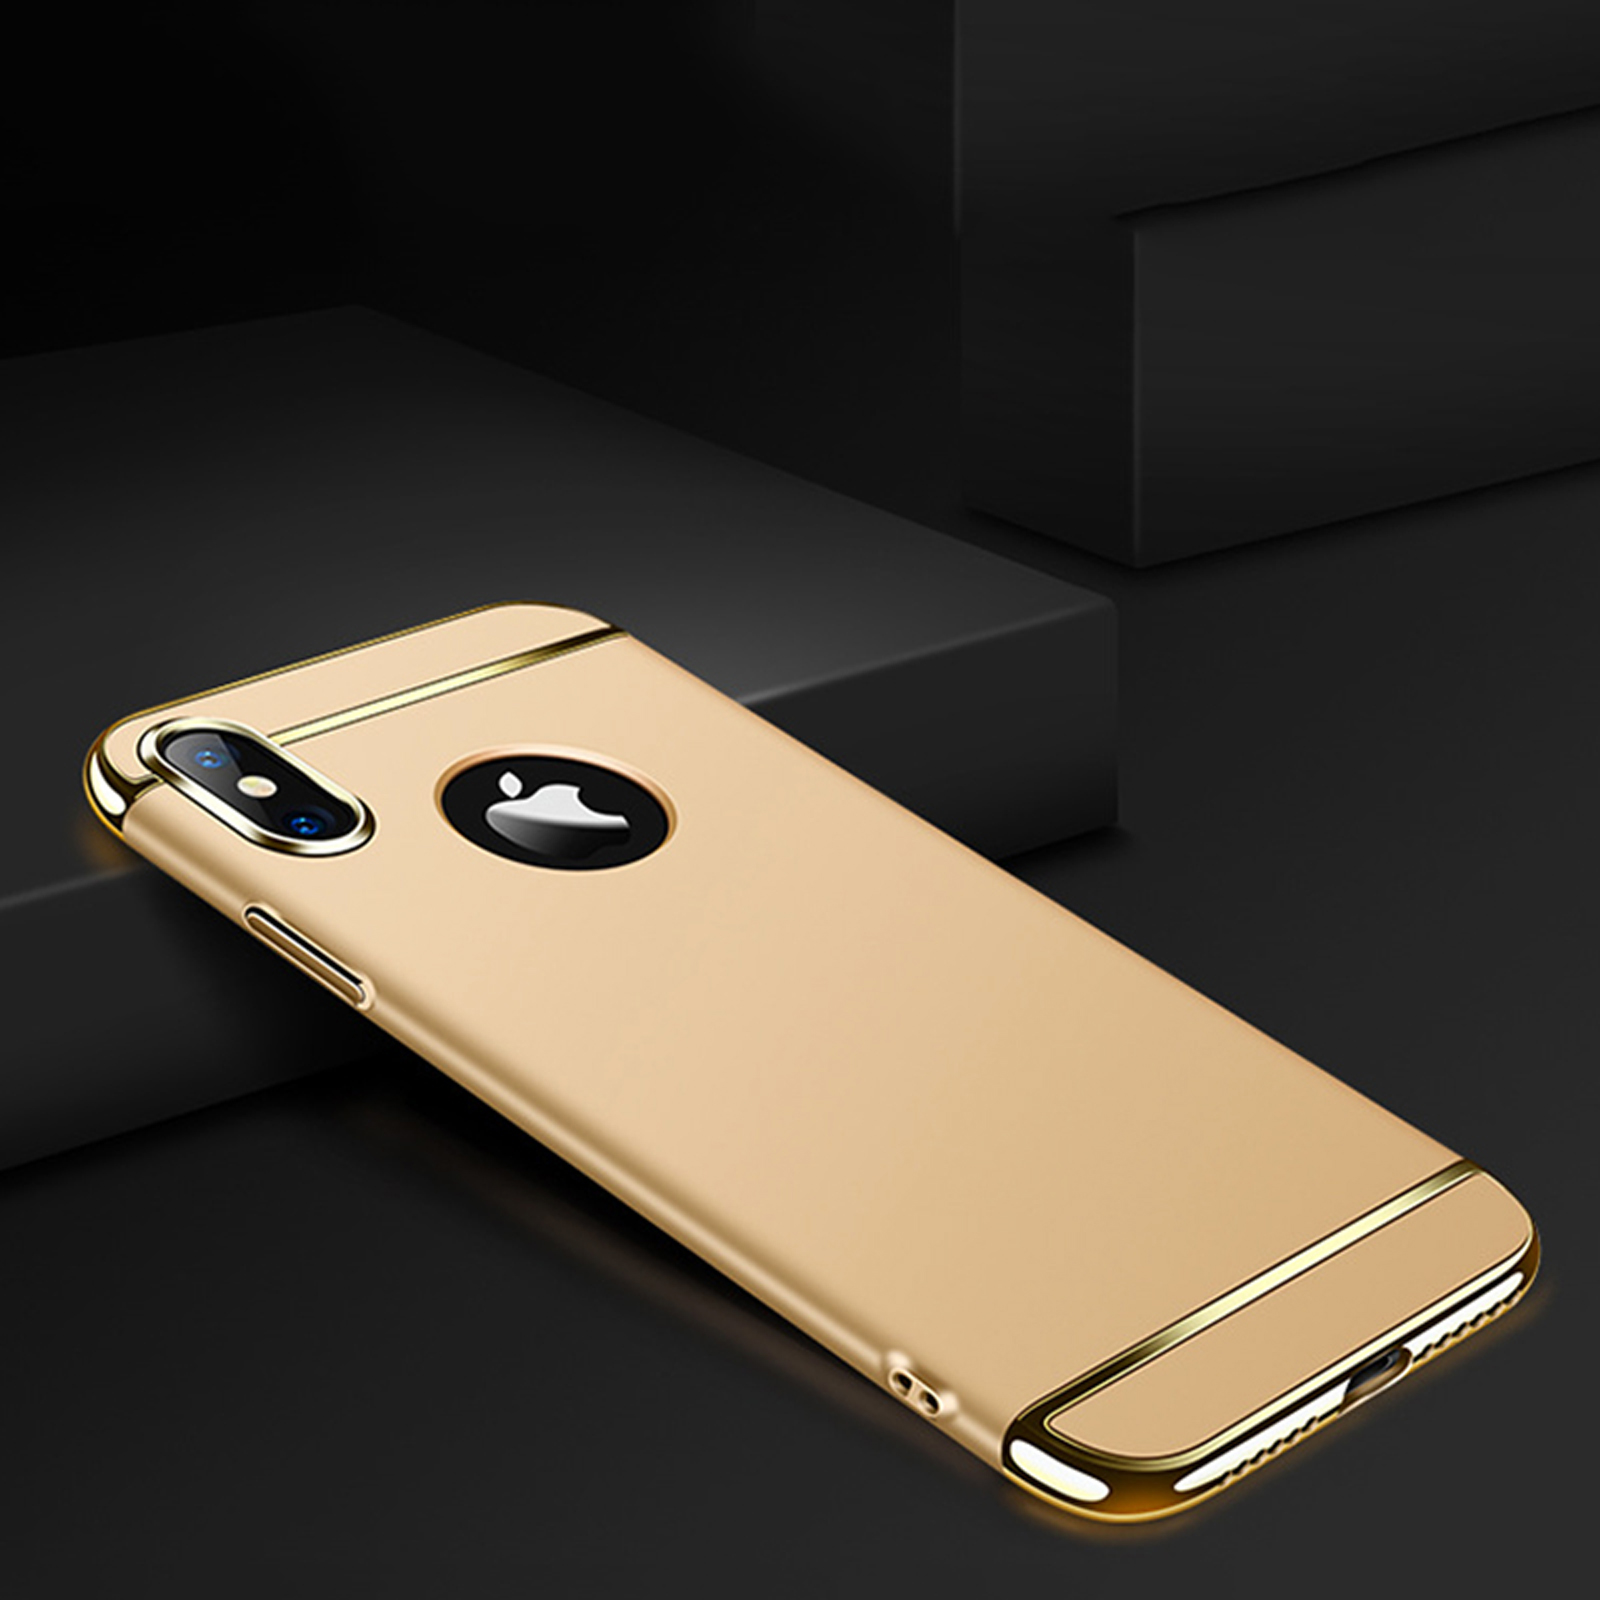 Luxury-Matte-Case-Tempered-Glass-Cover-For-Apple-iPhone-X-XS-XR-Max-10-8-7-6s-6 thumbnail 94